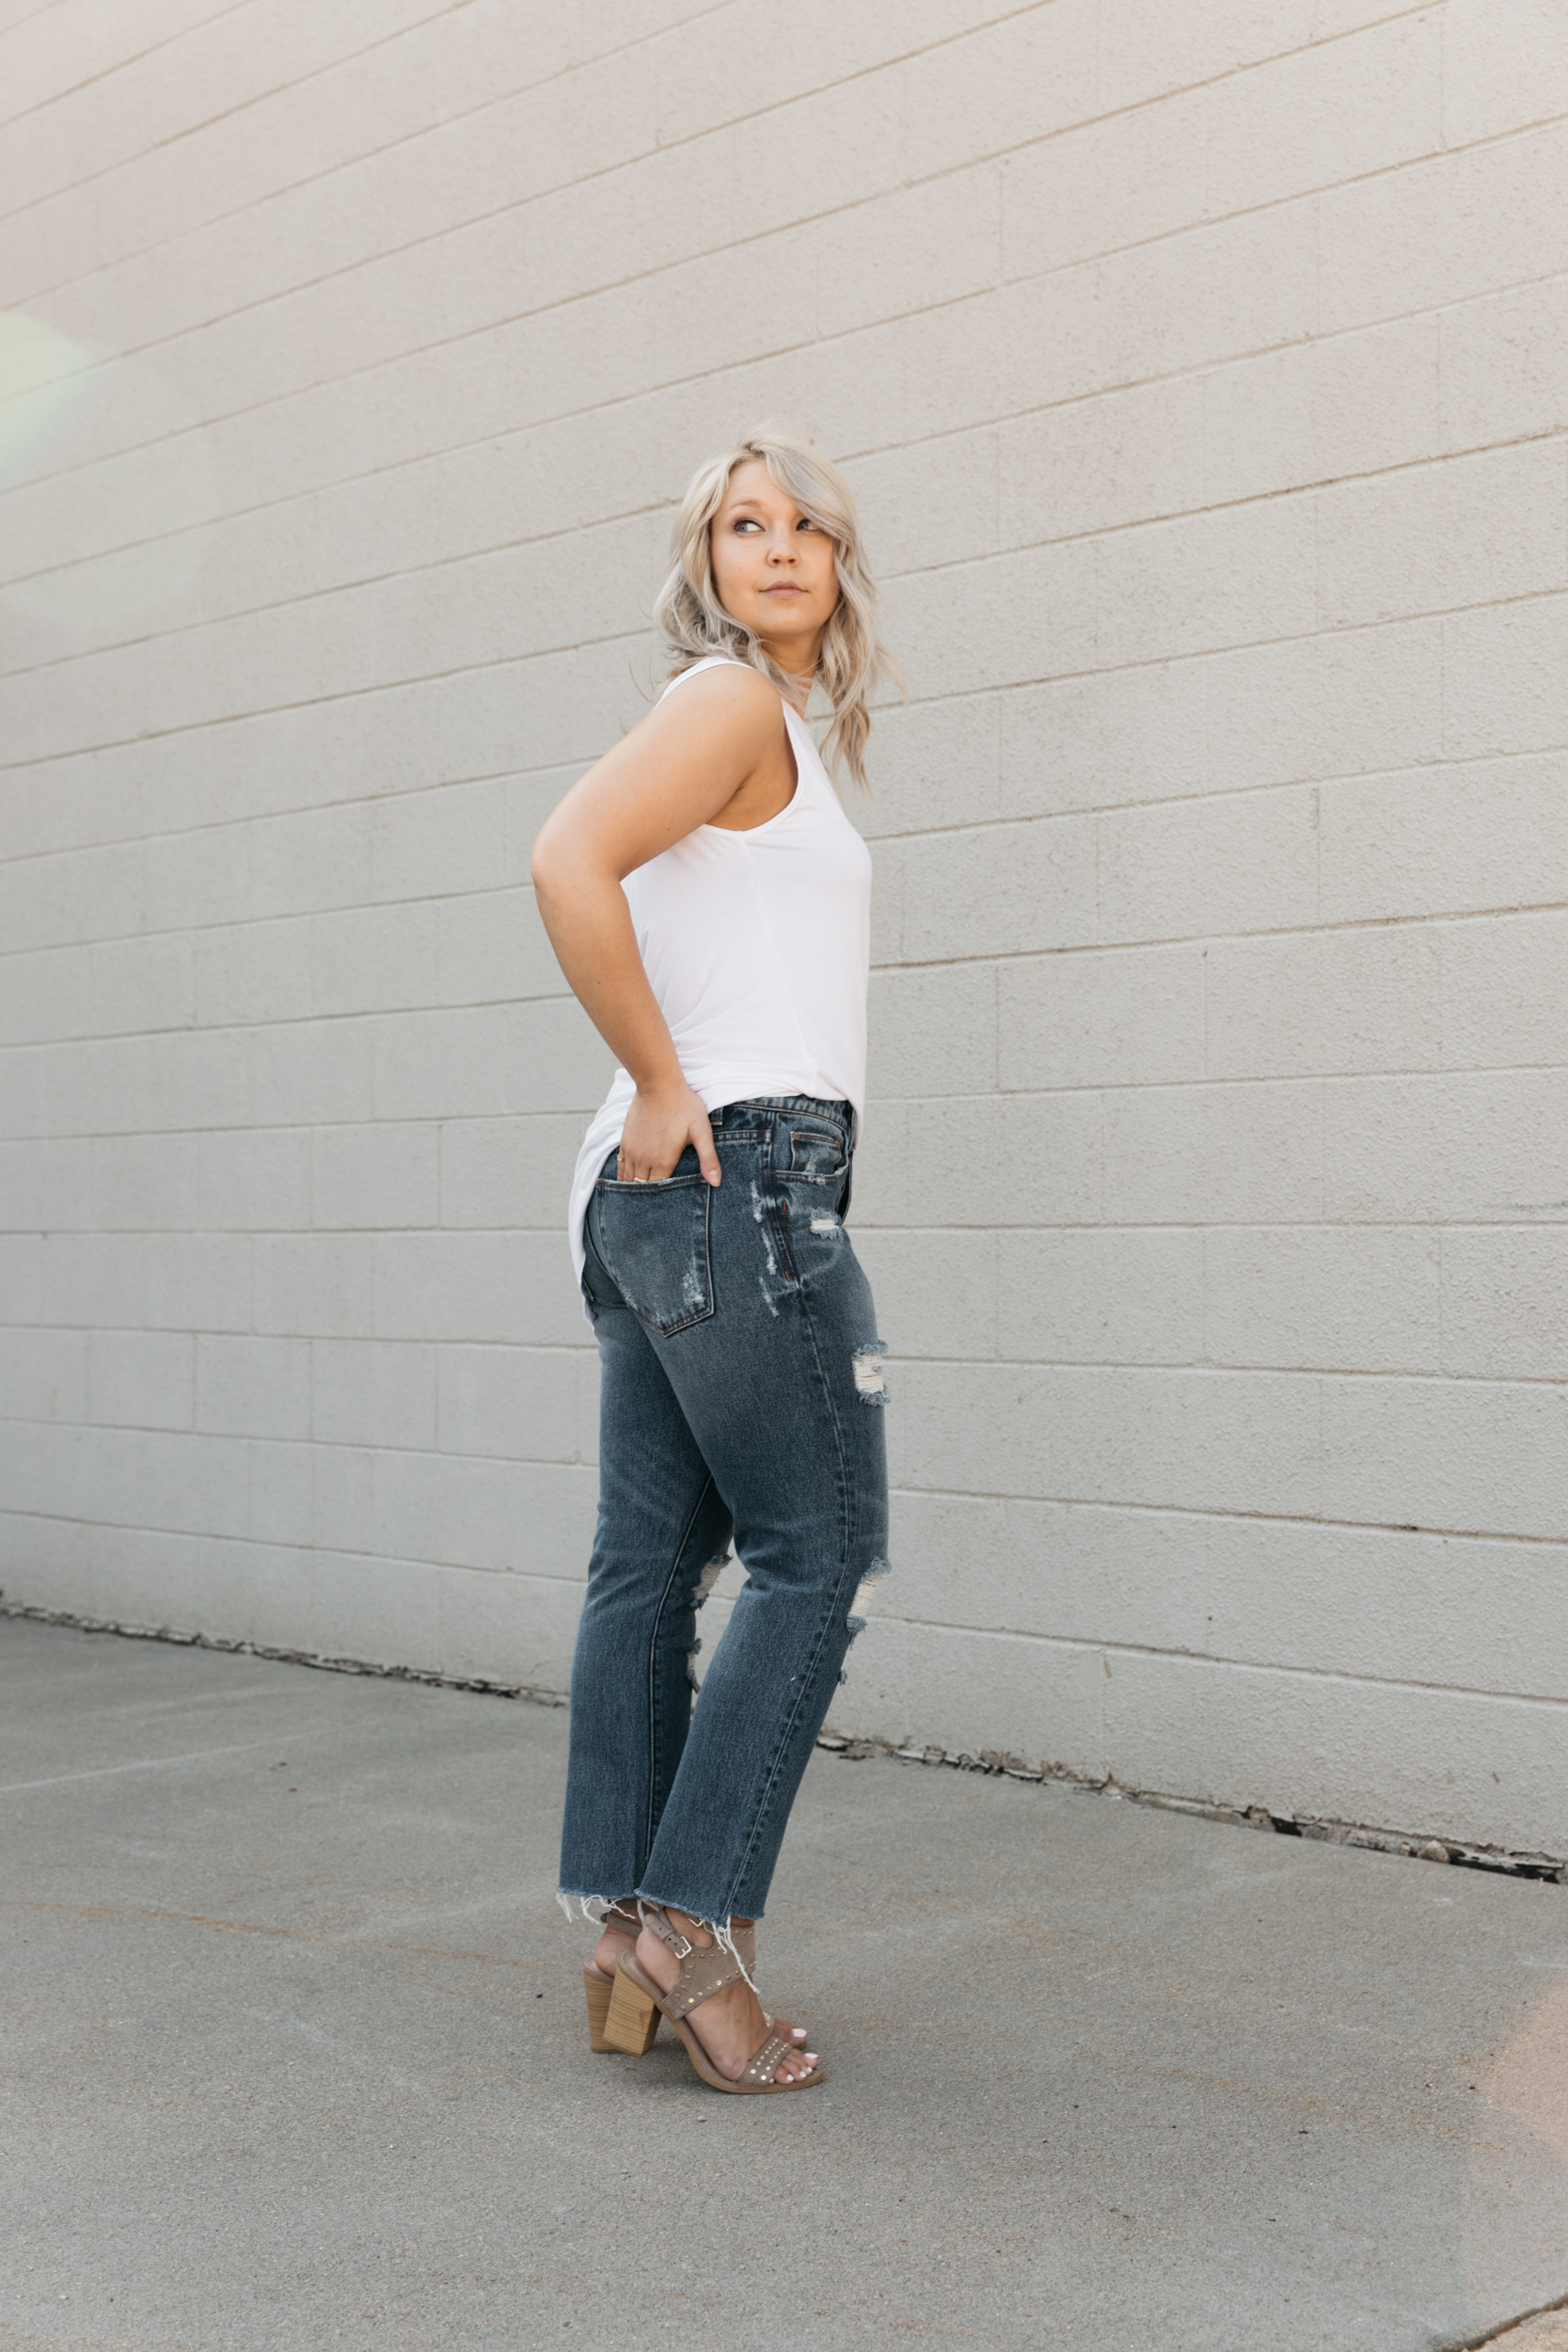 Blonde girl in Gilded Intent straight jeans with a step hem and heels.